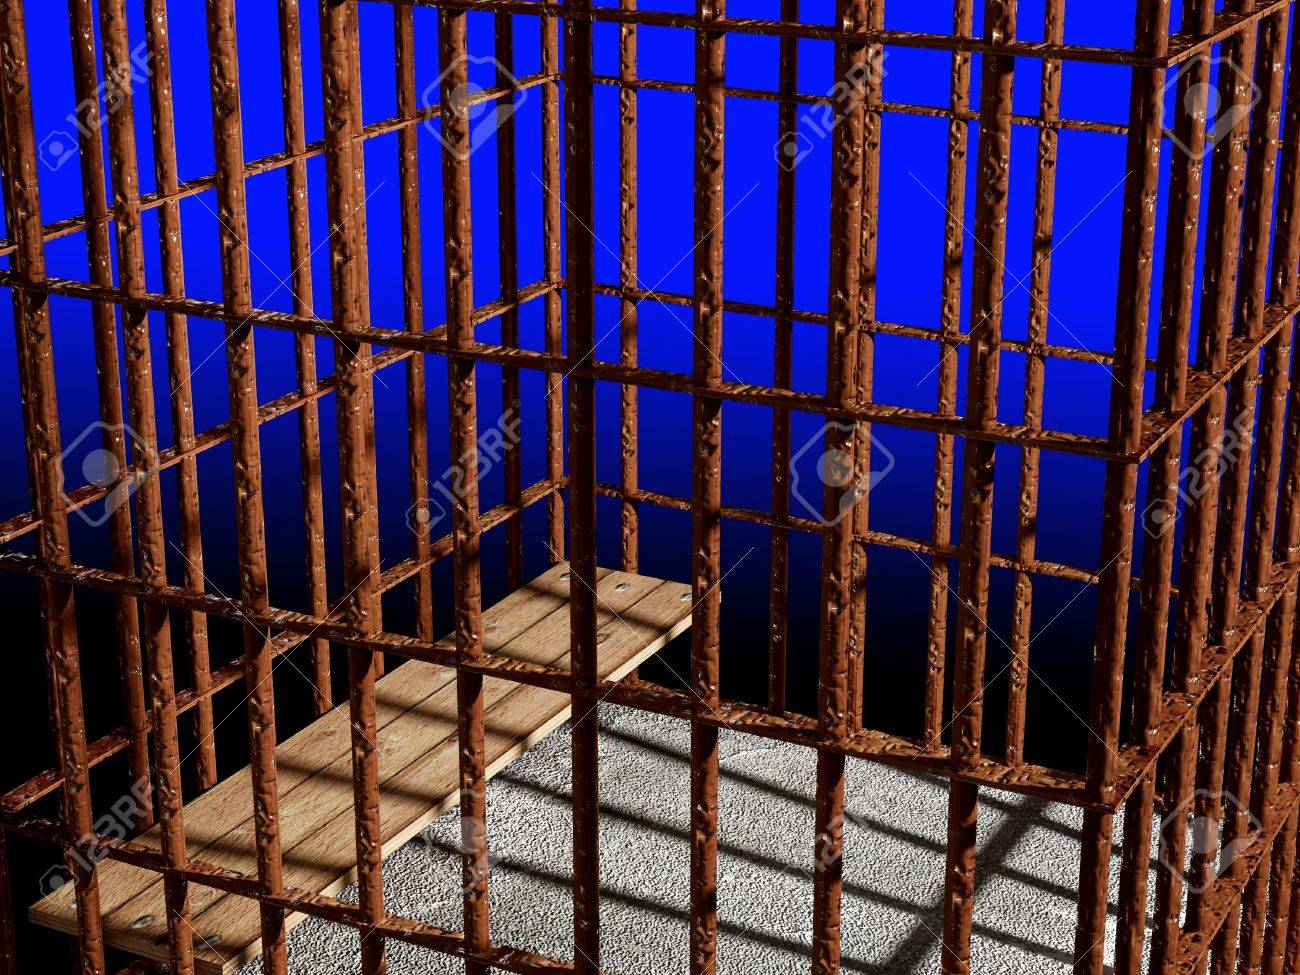 metal cage 3d, concept of jail 01 background Stock Photo - 3229132